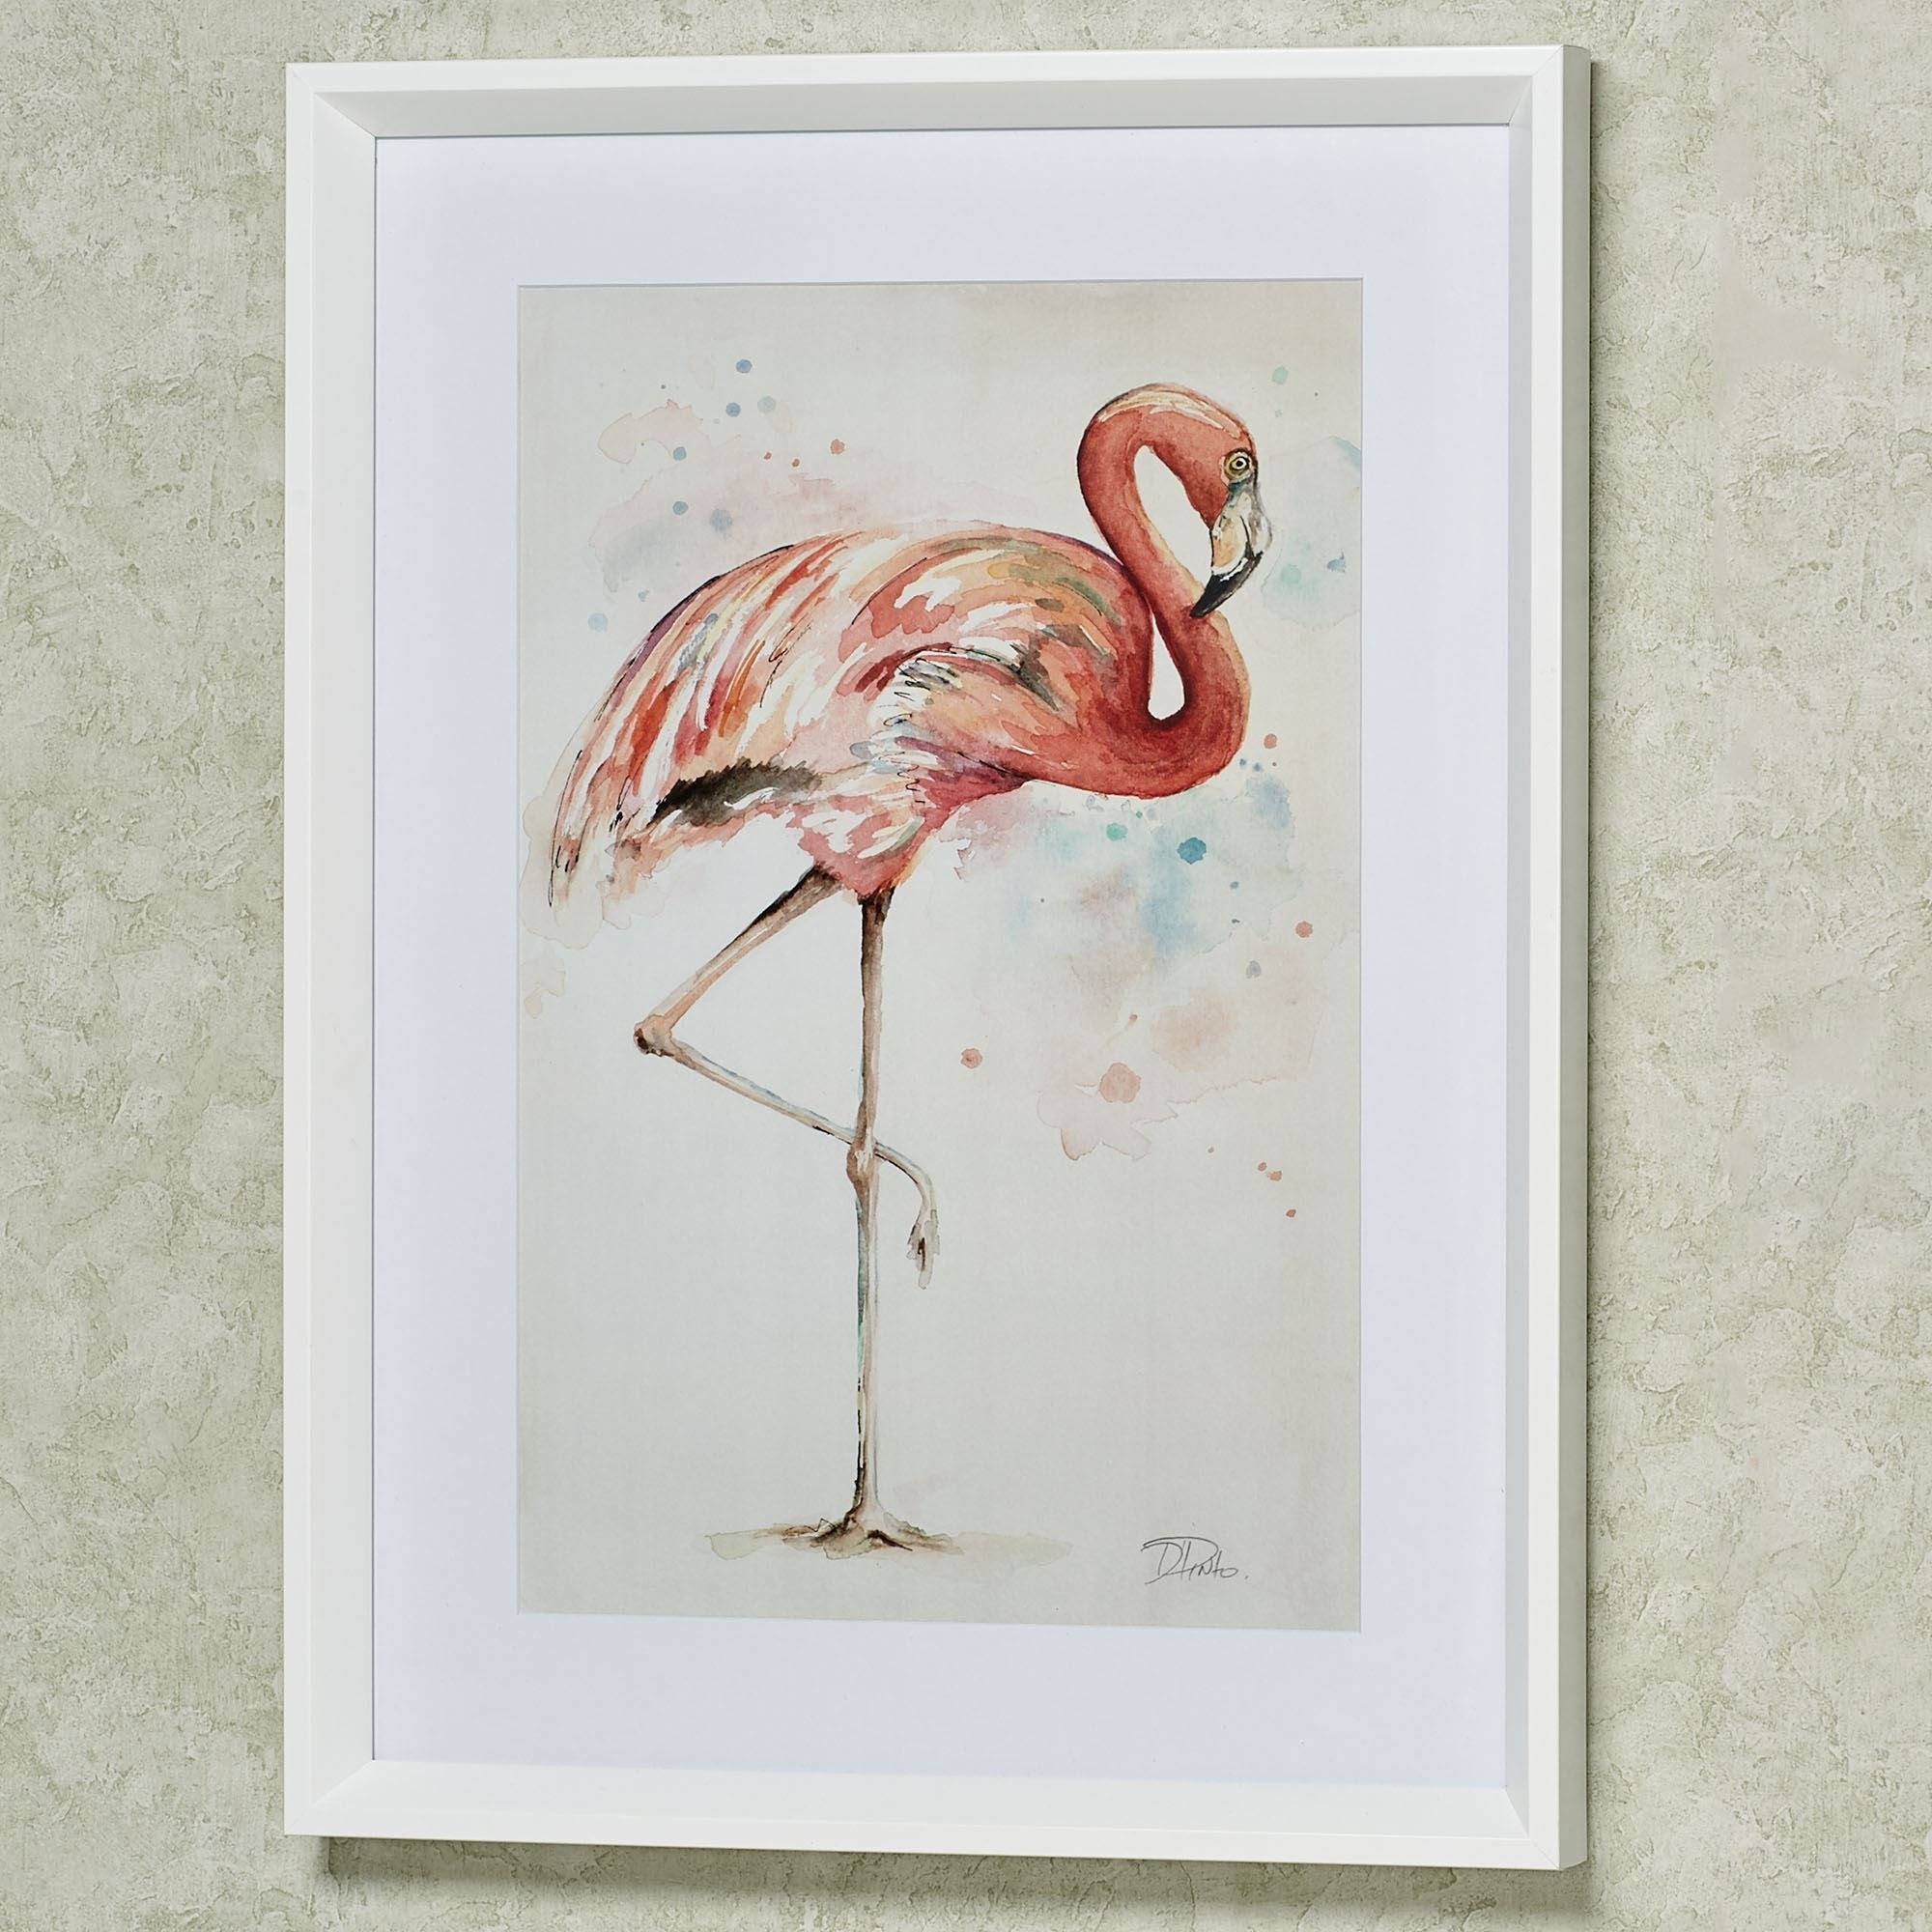 Coral Pink Flamingo Framed Print Wall Art Intended For Most Popular Framed Coral Art Prints (View 10 of 15)